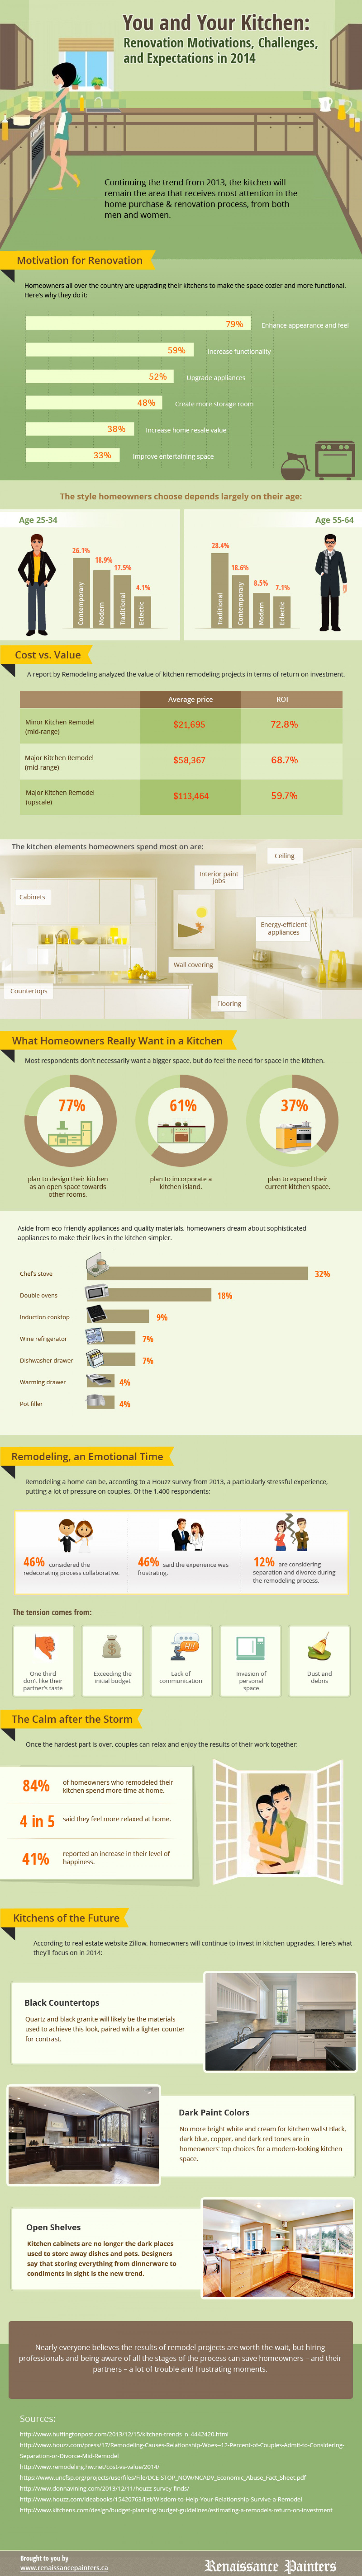 You and Your Kitchen: Renovation Motivations, Challenges, and Expectations in 2014 Infographic